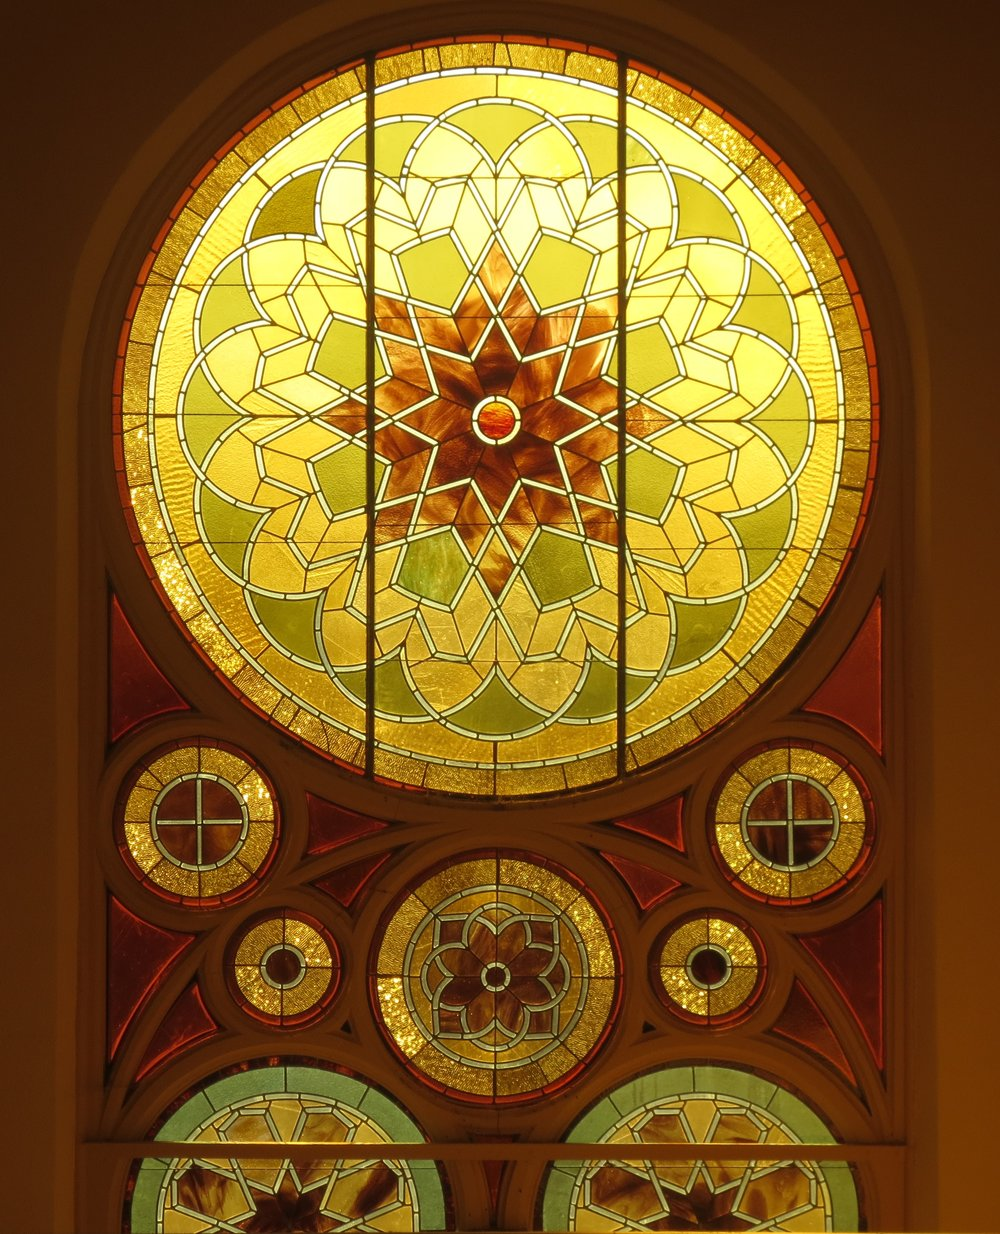 An original stained-glass window inside Congregation Ahavath Beth Israel of Boise. Credit: Dan Fellner.